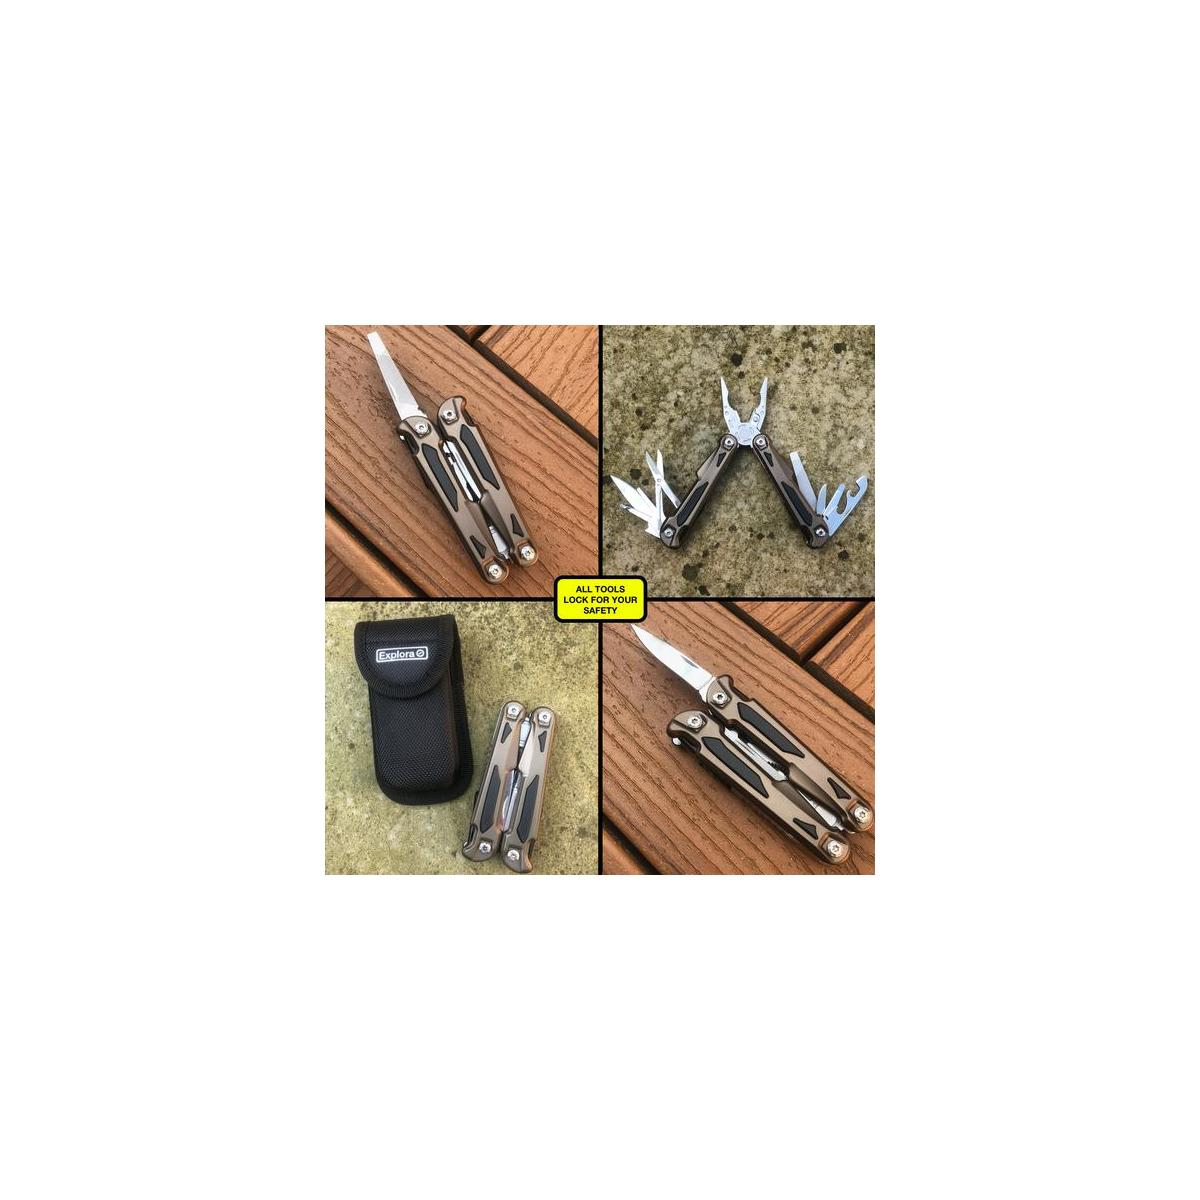 Multitool Knife with Scissors and Belt Pouch Gift Set by Explora. New Design - Contoured Handles for Safe and Comfortable Grip. For Hiking, Camping, Survival, Travel, Fishing, Bug Out Bag.